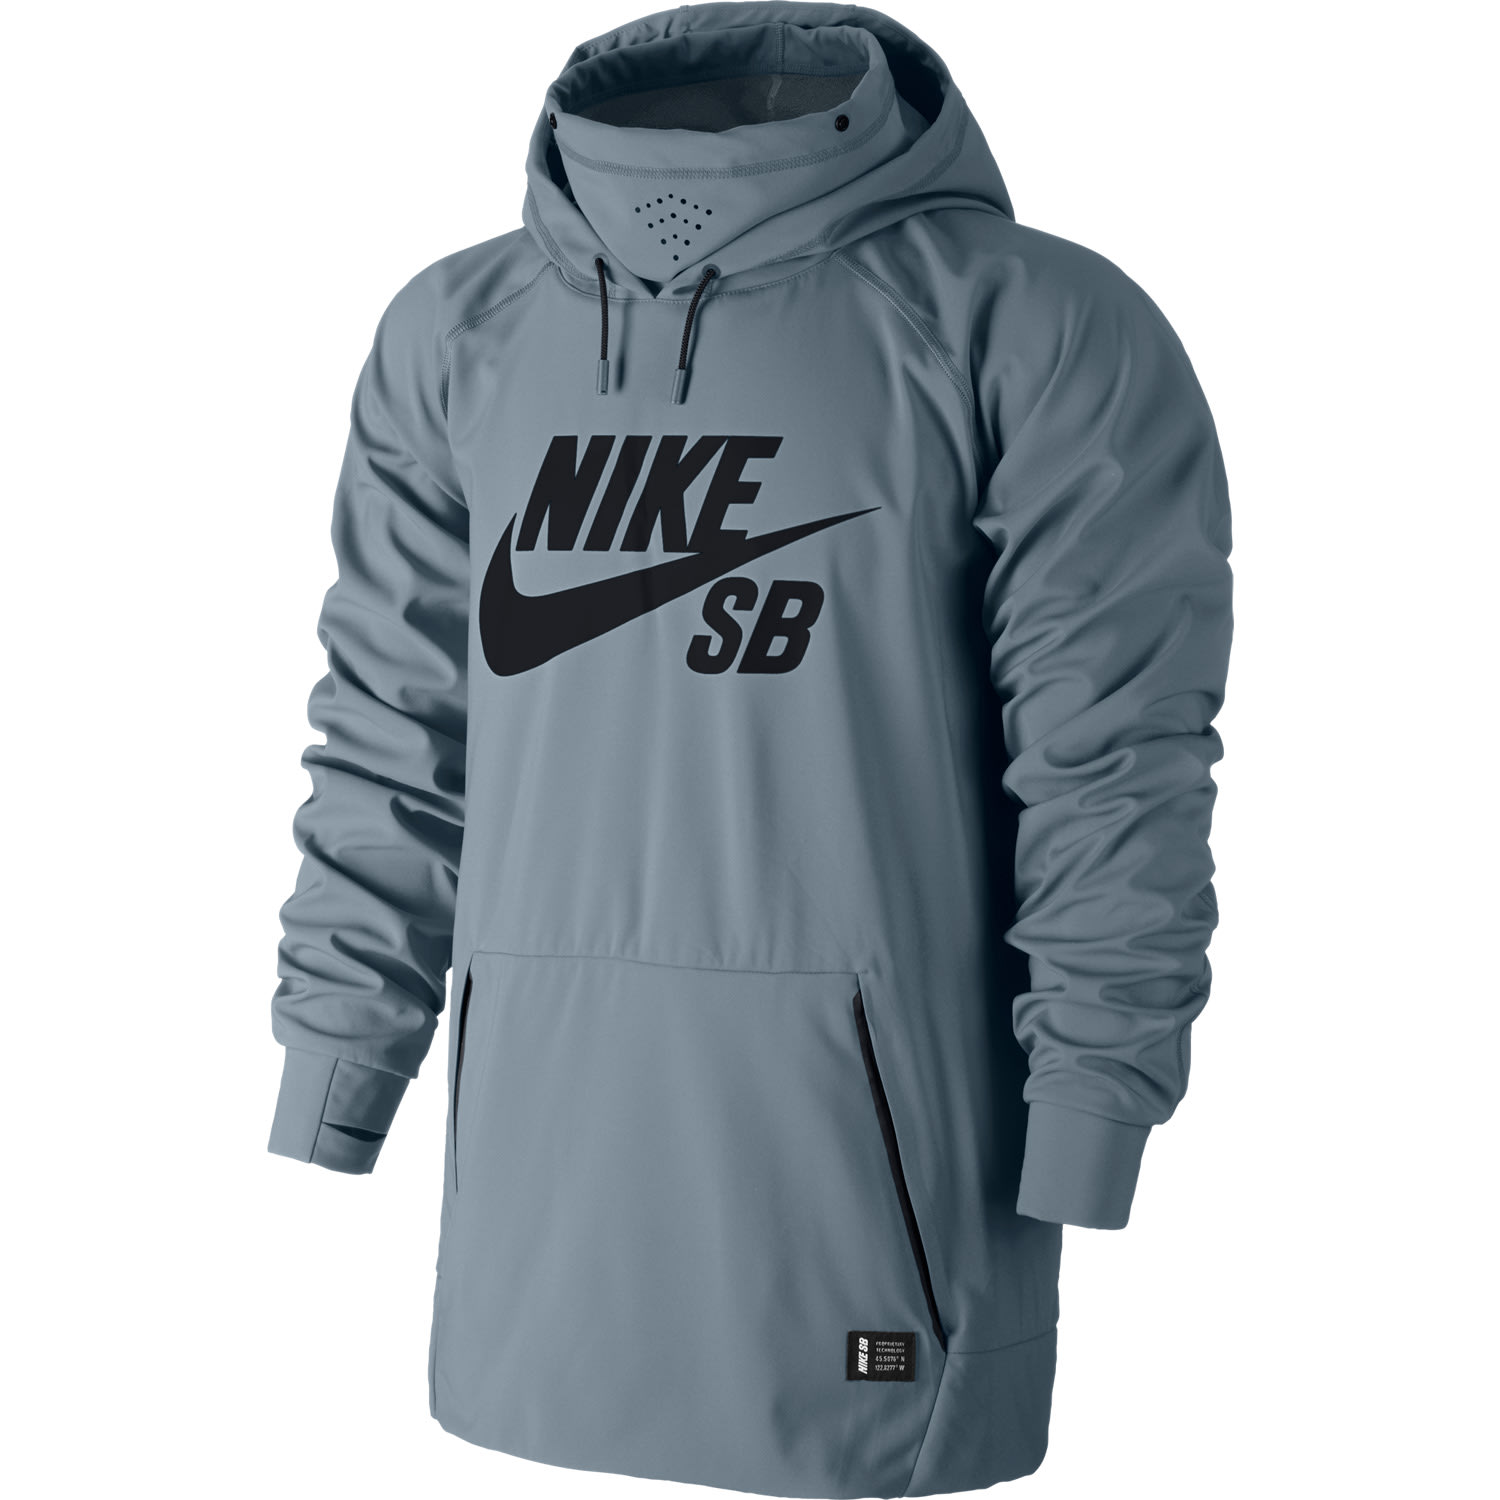 On Sale Nike Enigma Hoodie up to 50% off